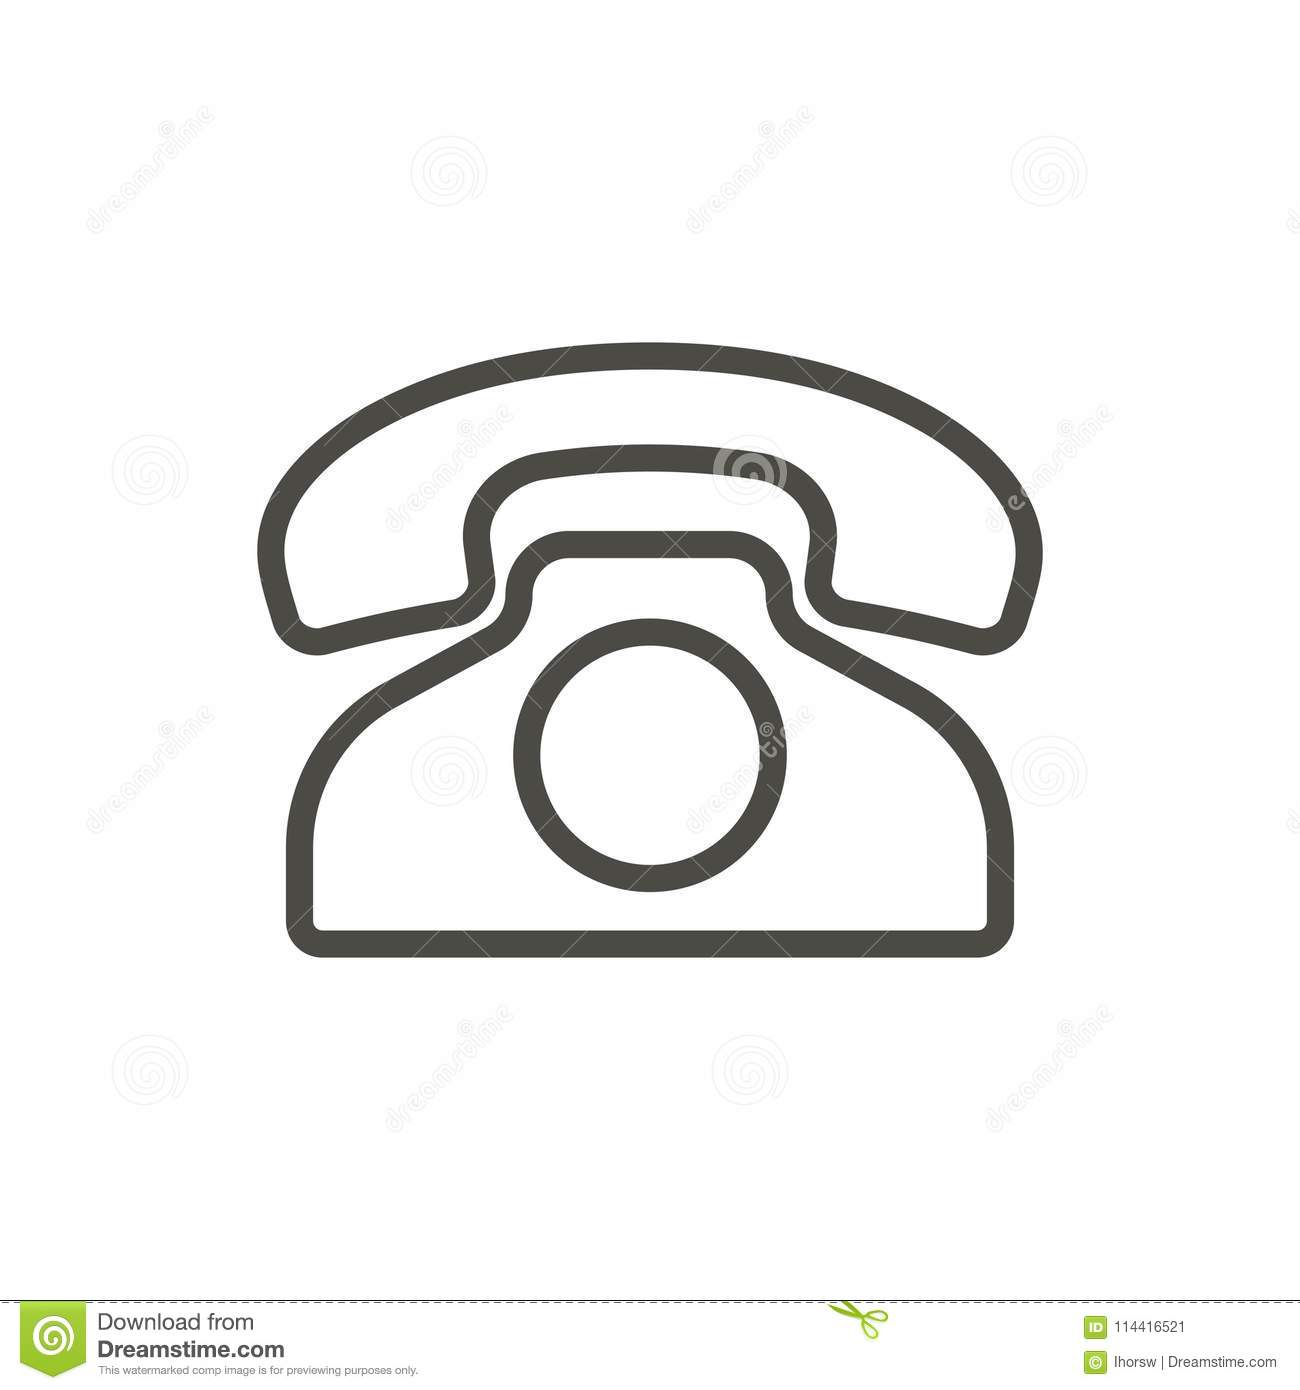 Old phone icon vector. Outline telephone. Line vintage phone symbol.